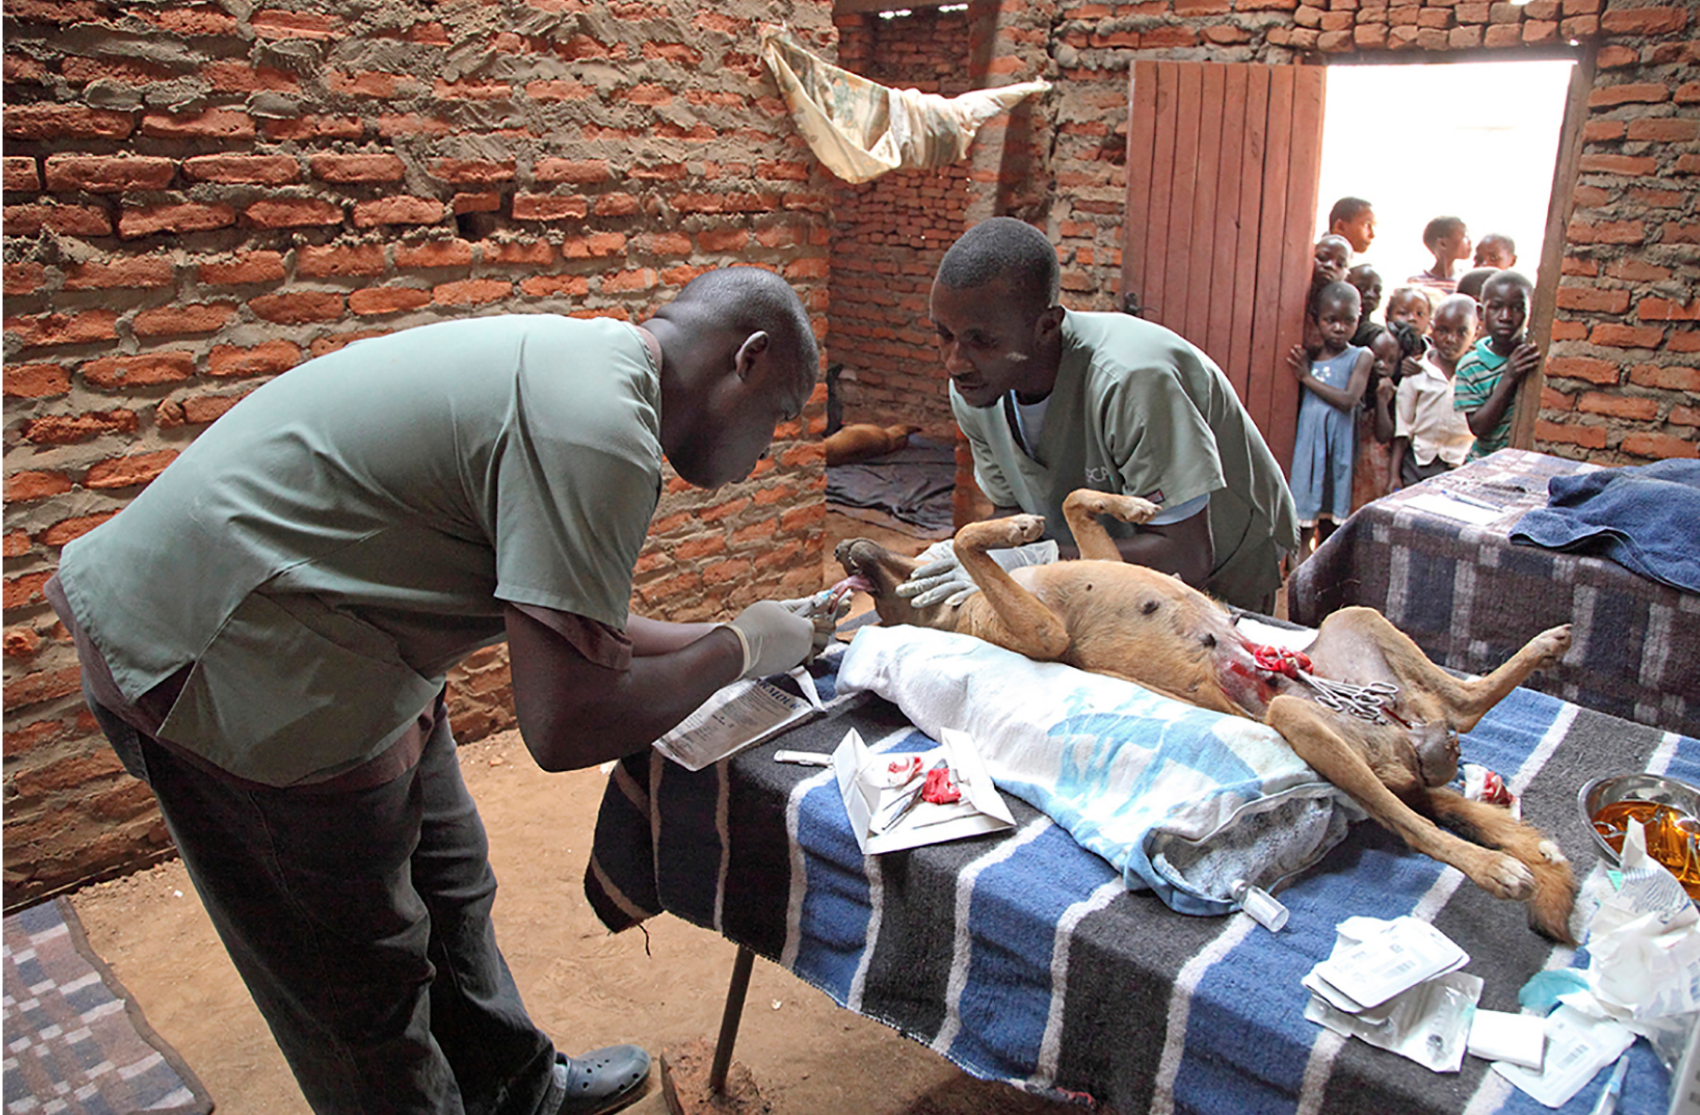 Dr Ssuna and an assistant help to save a dog in Lilongwe. Used with permission from Joseph Murphy https://www.josephmurphyphotography.com/new-page-3